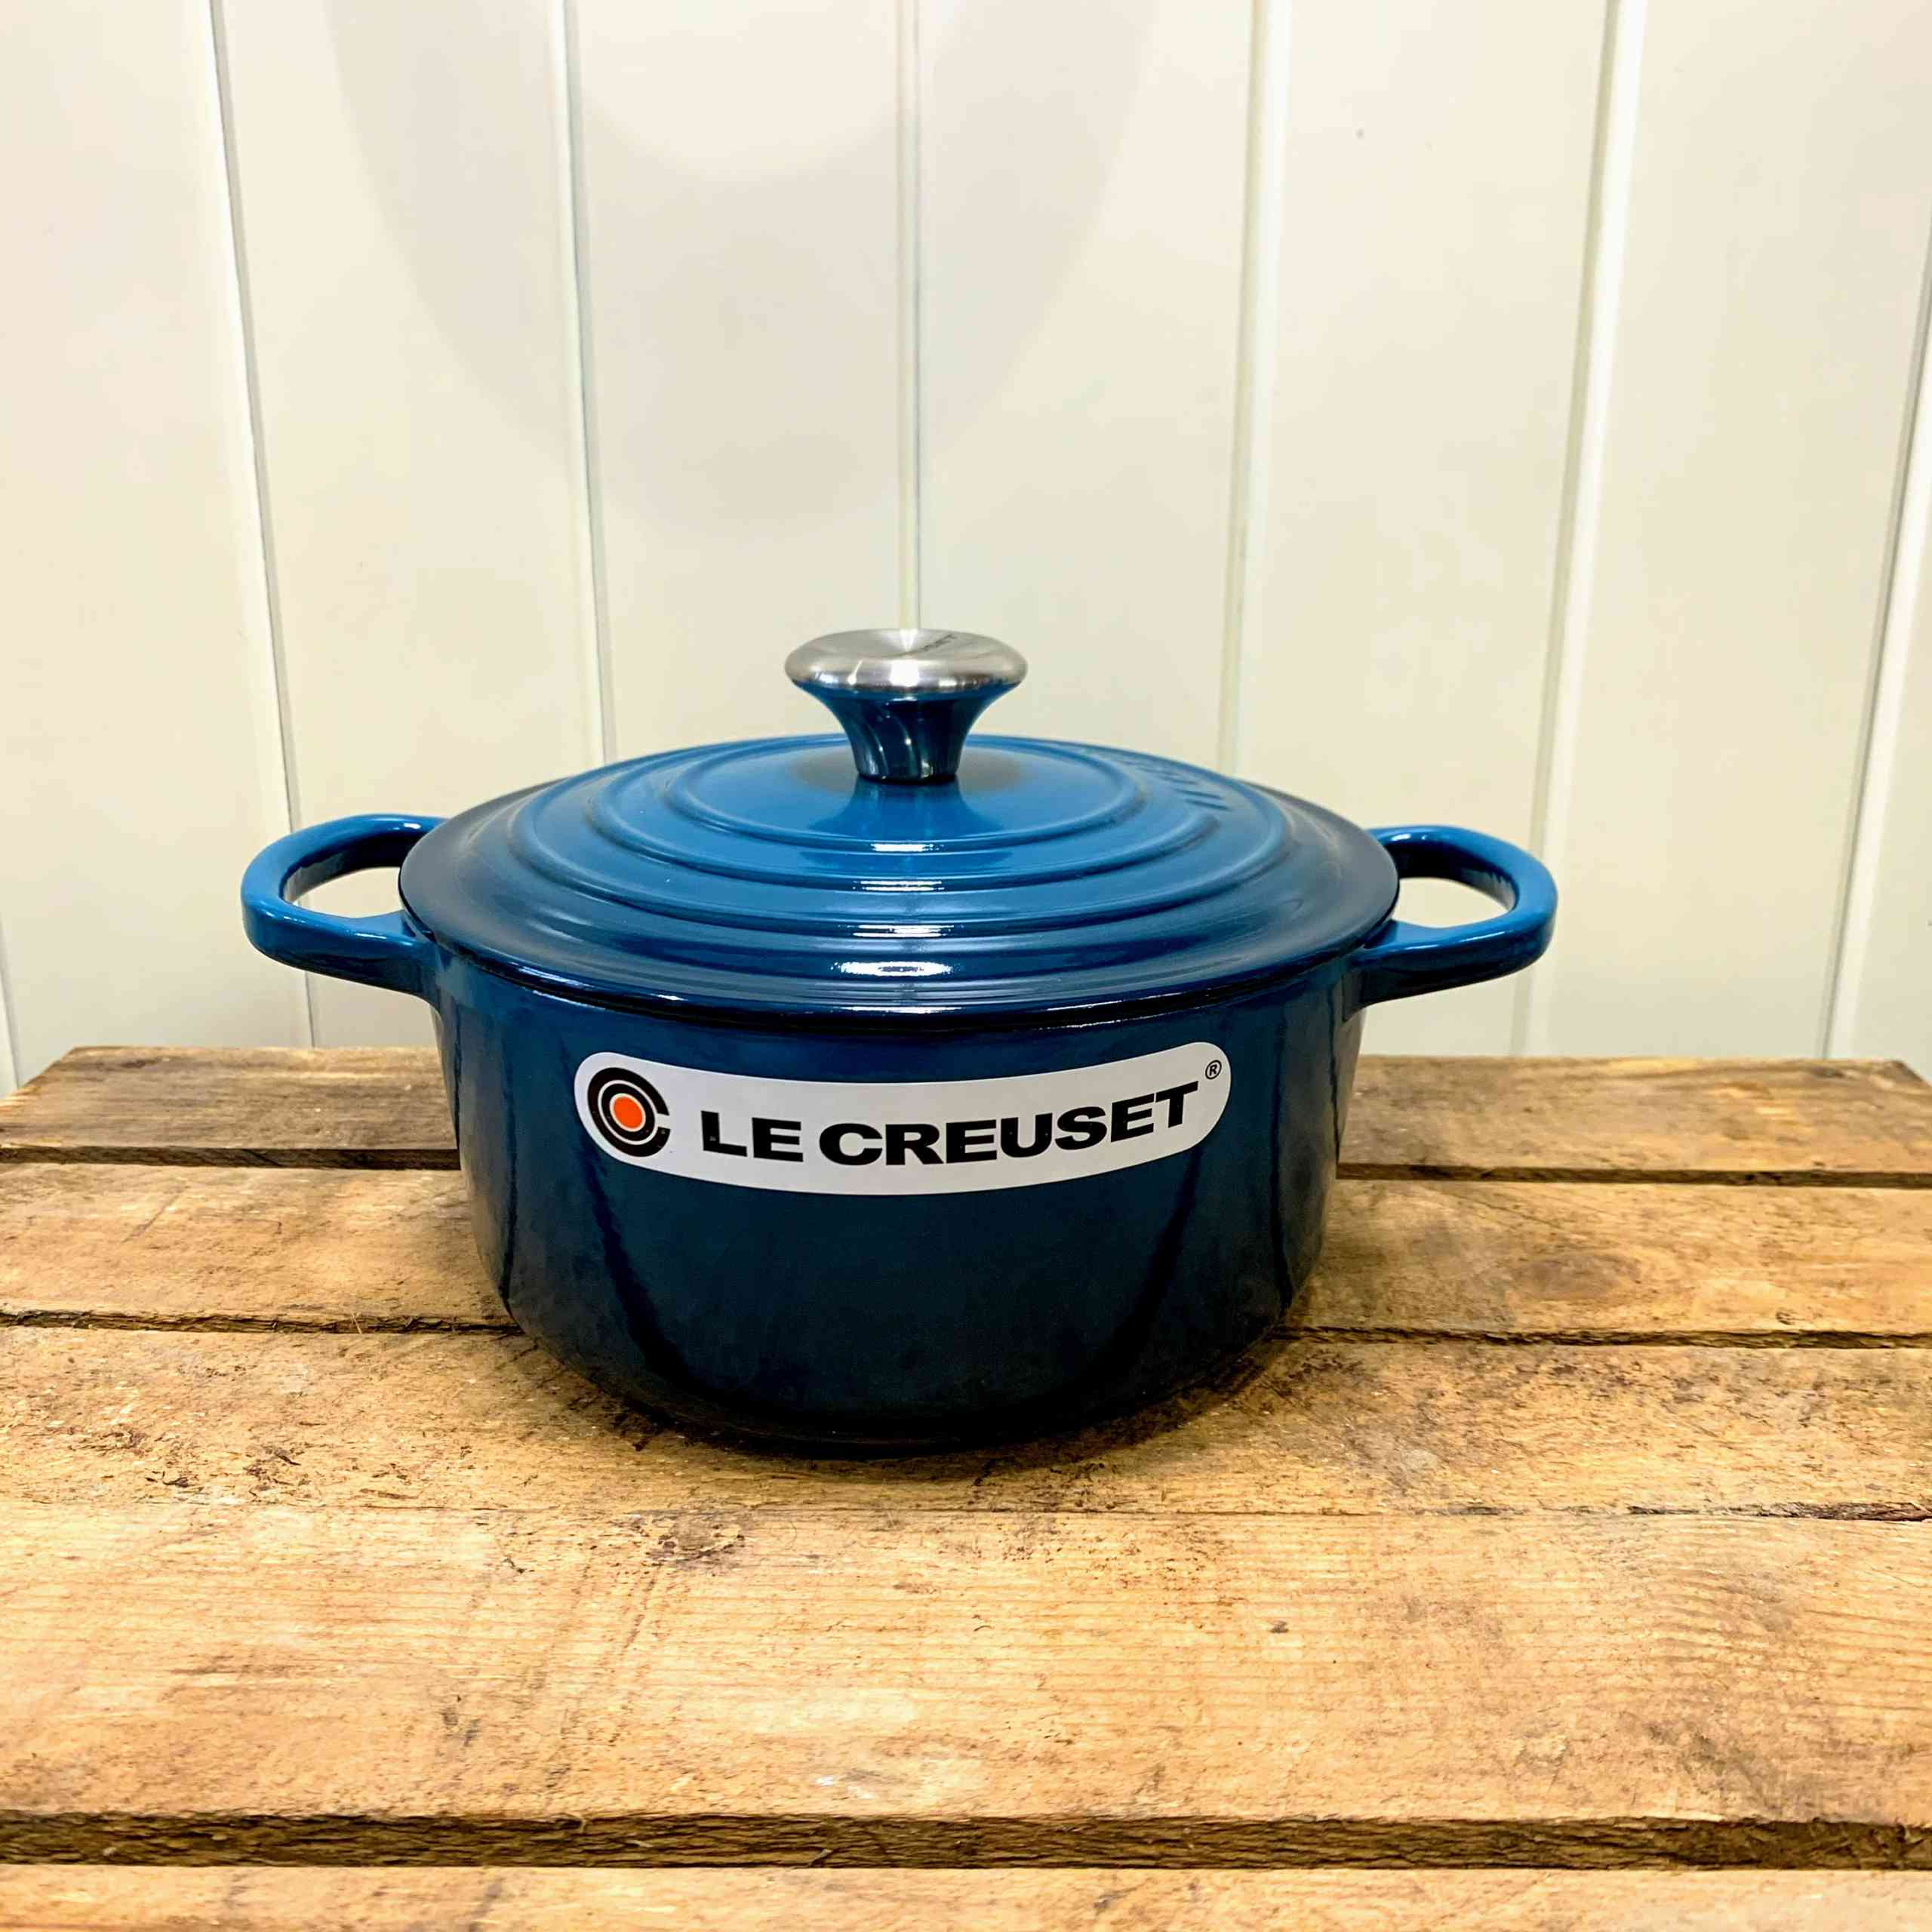 Le Creuset Signature Cast Iron 18cm Round Casserole Cooks Special Offer Cooking Kneads